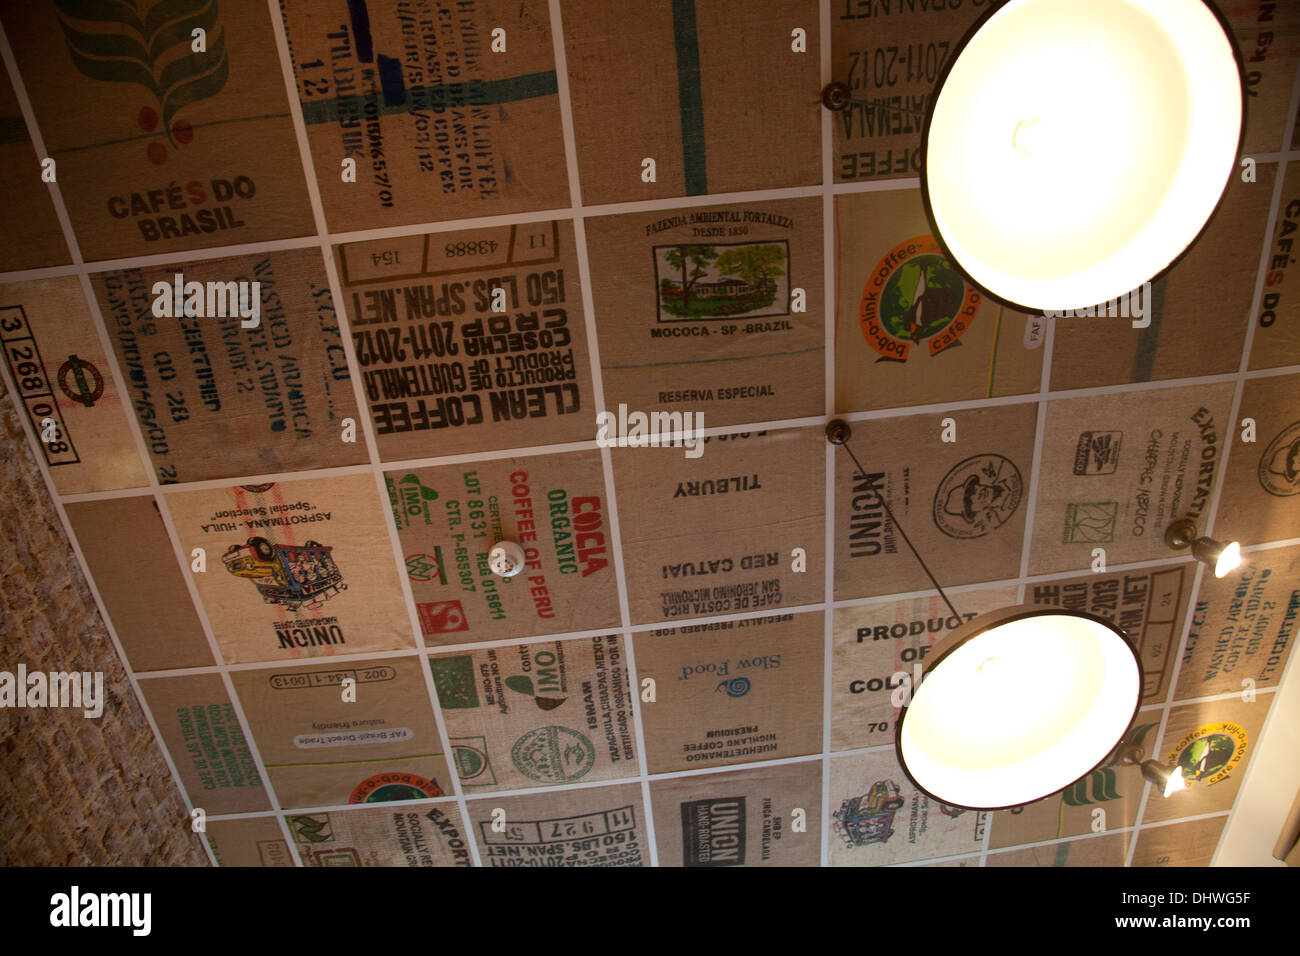 Coffee Bean Sacks Applied as Ceiling Surface at Brickwood Cafe in Clapham - SW4 - Stock Image